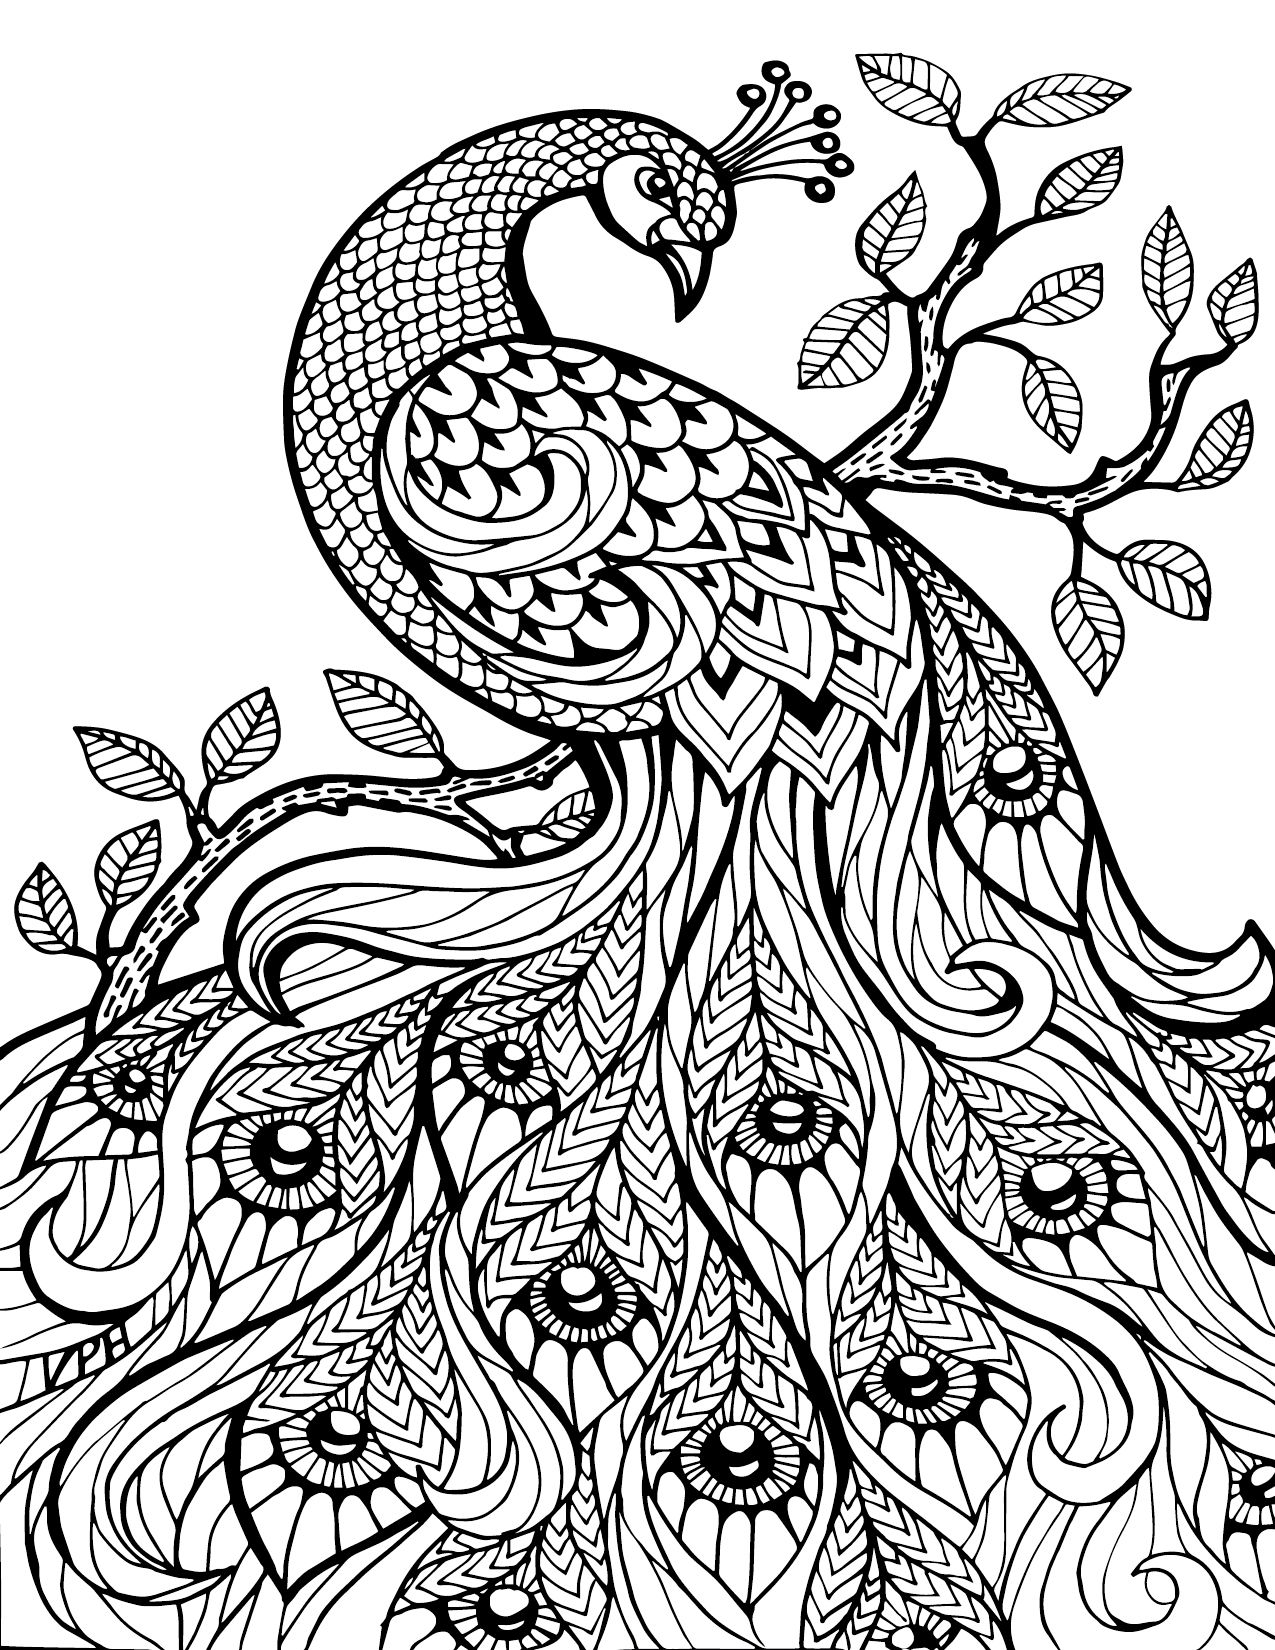 Free coloring pages for adults abstract - Free Printable Coloring Pages For Adults Only Image 36 Art Davlin Publishing